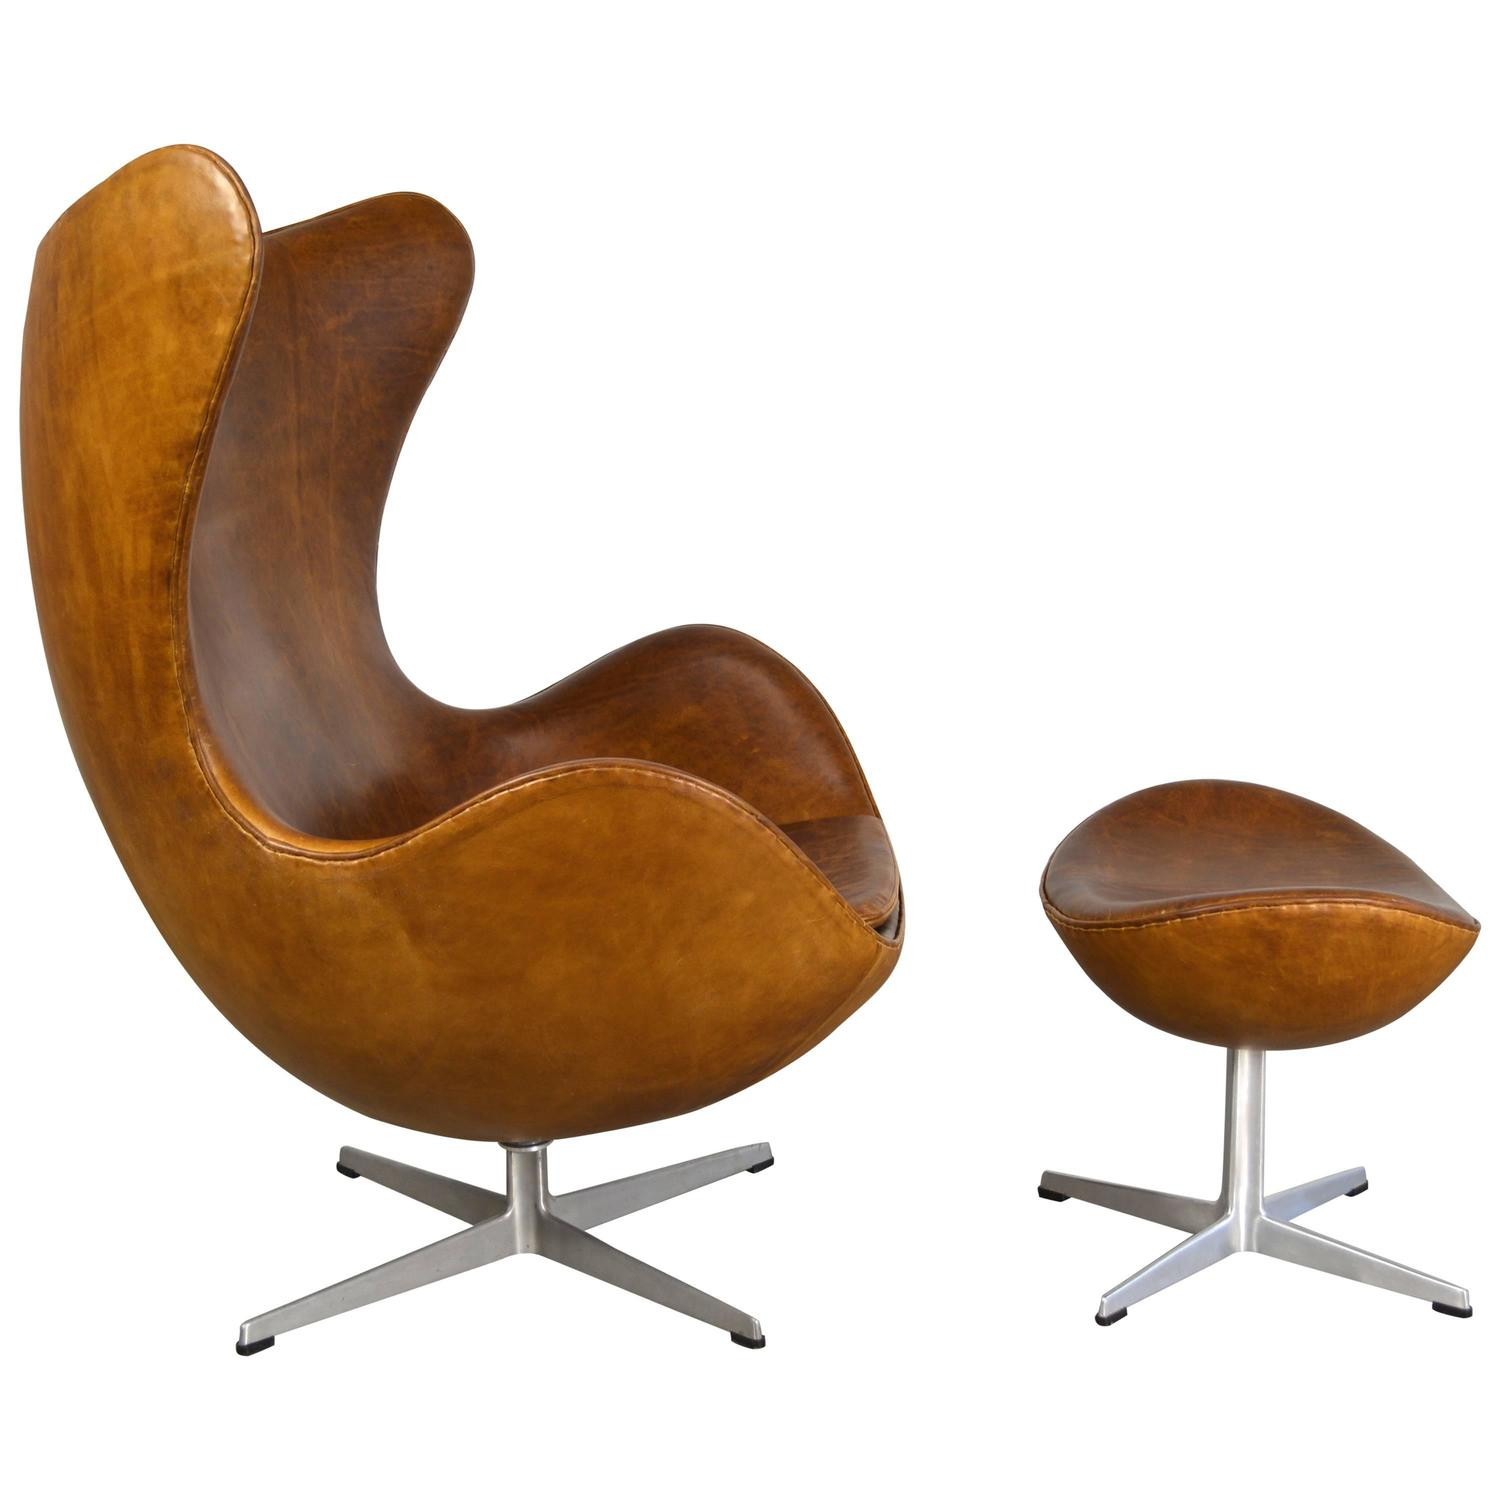 Arne jacobsen egg chair and ottoman at 1stdibs for Egg chair jacobsen